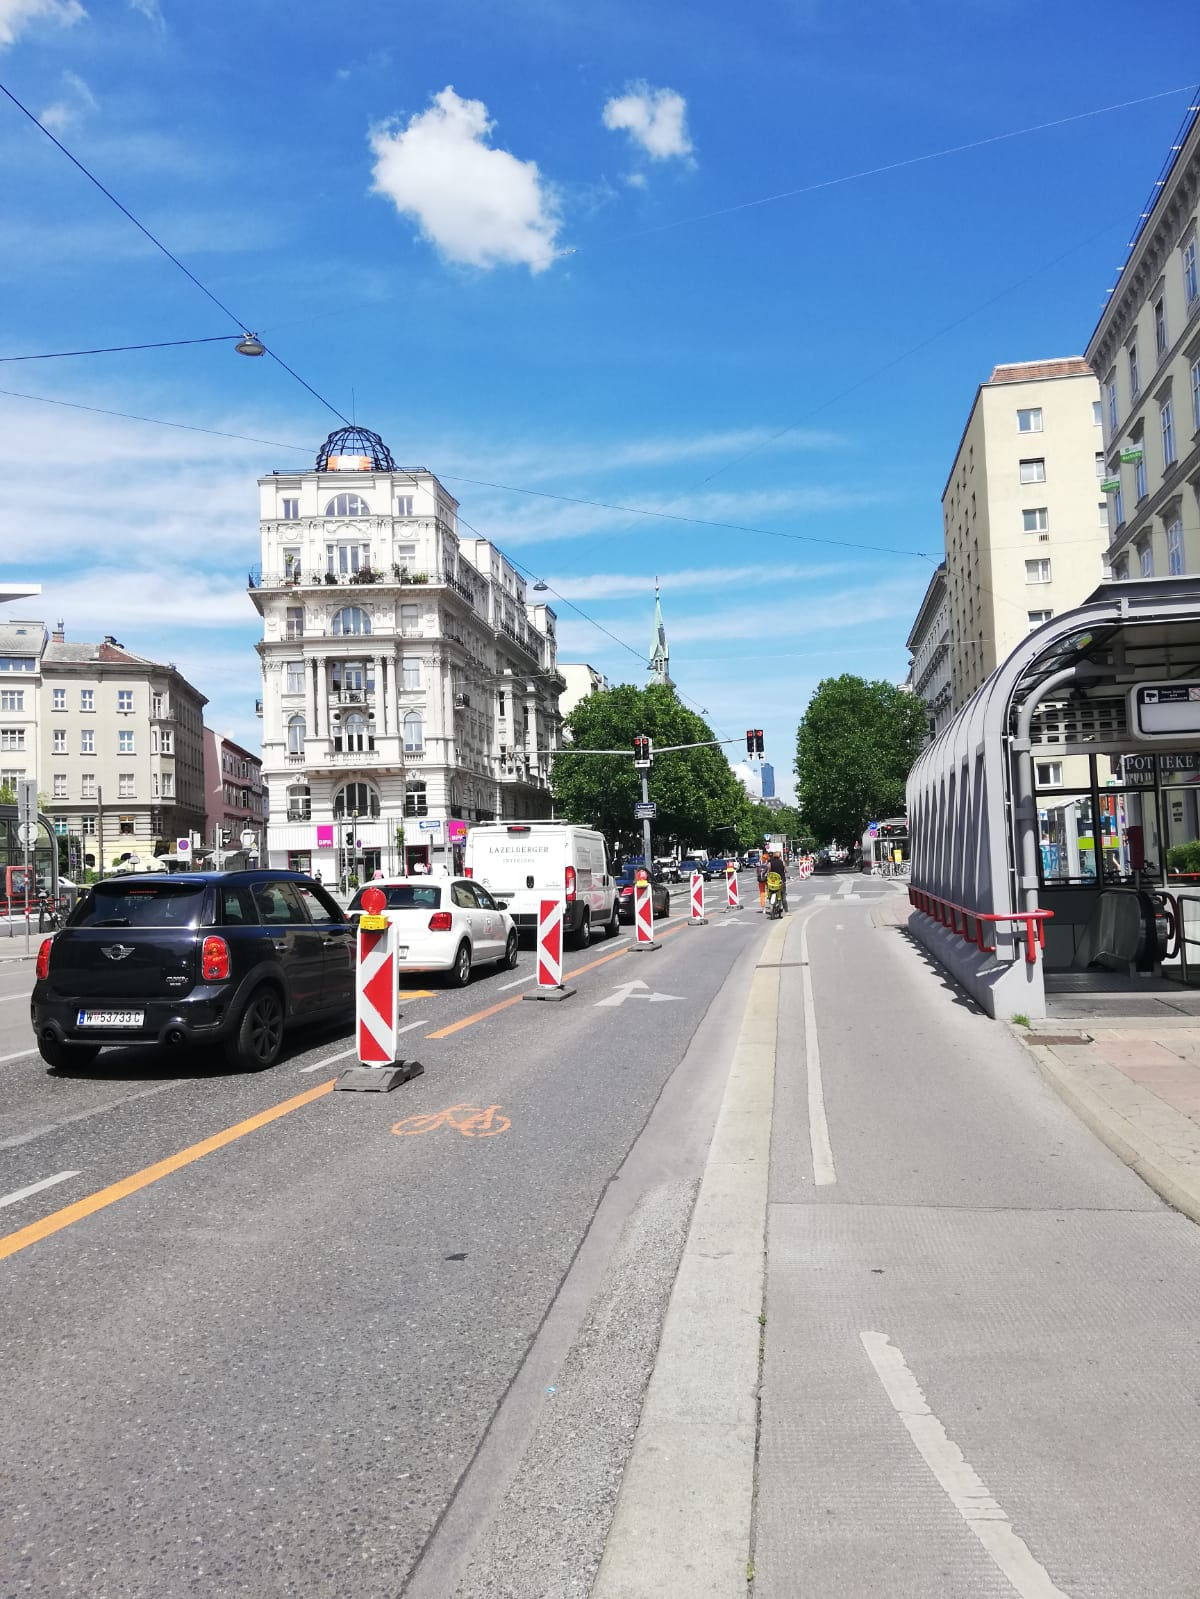 PlaceCity Walk Vienna Pop-up bike lane in Vienna